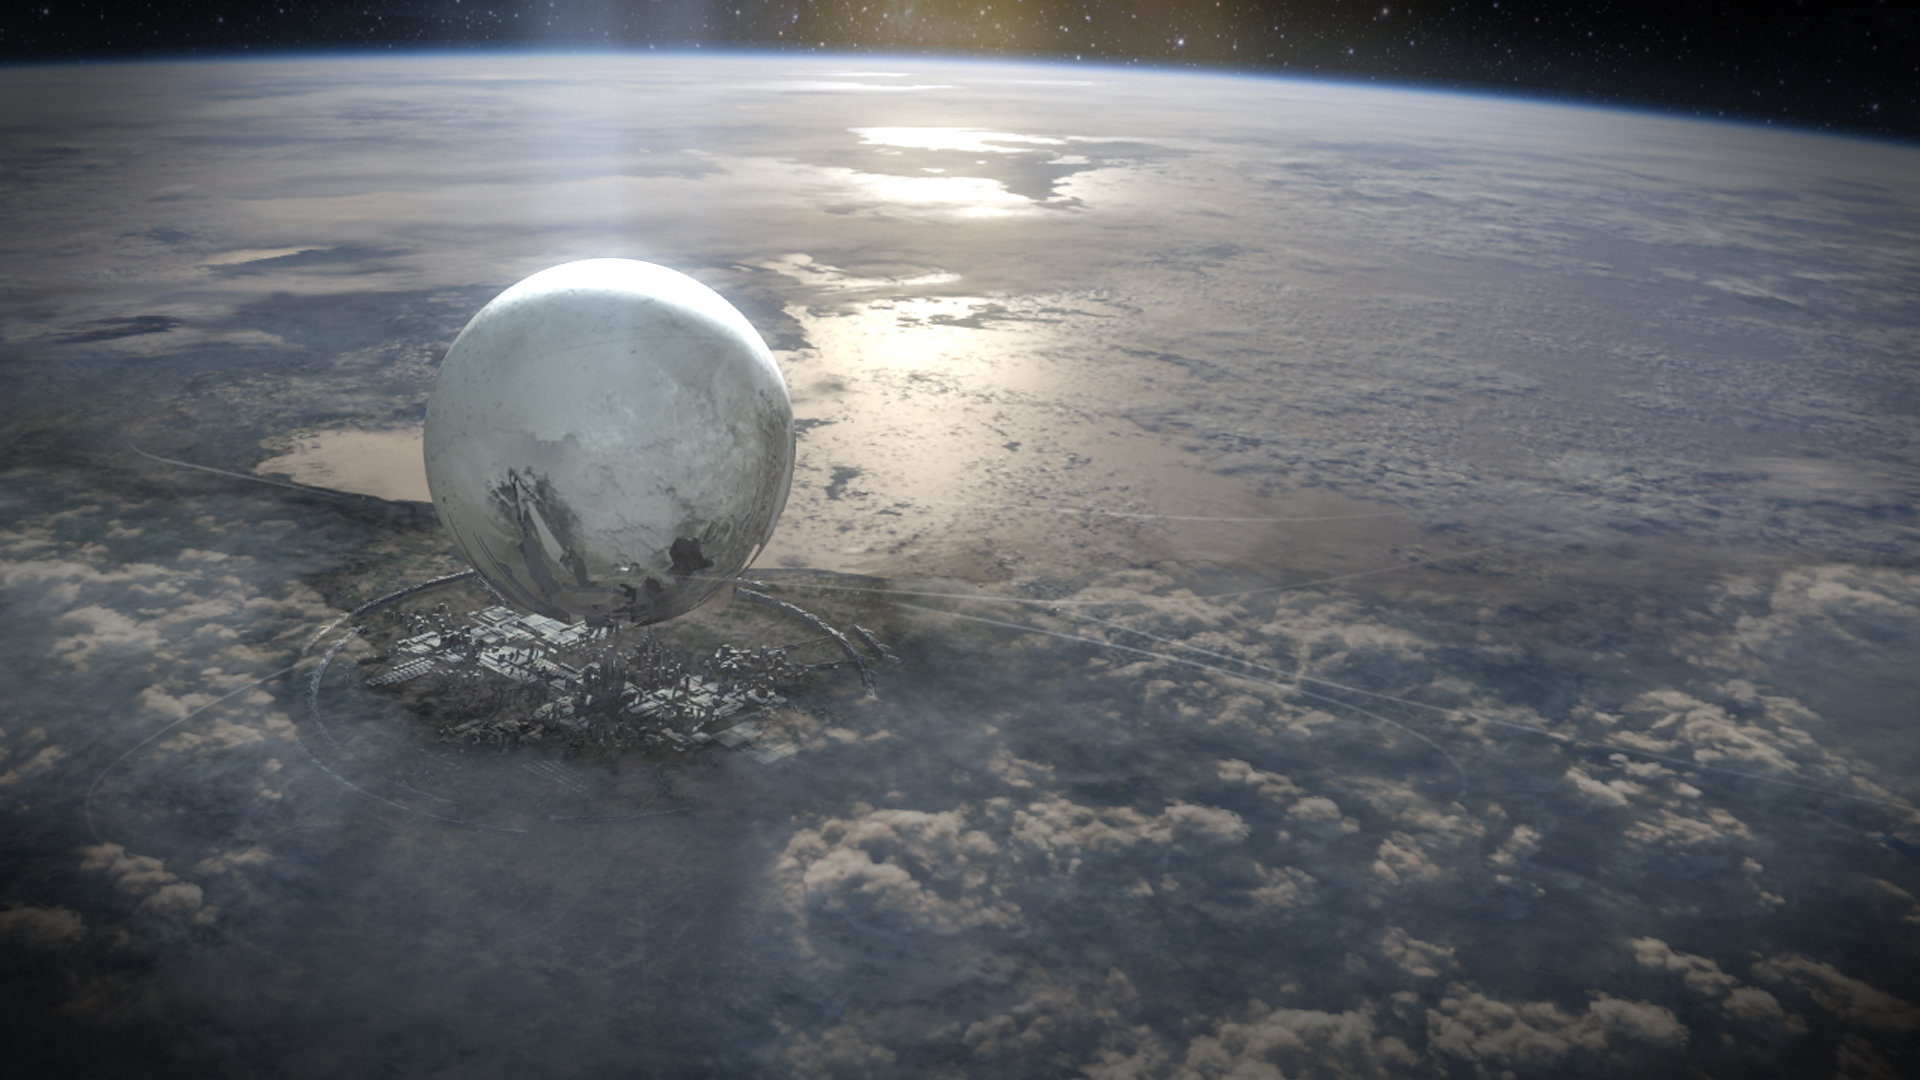 Destiny's Downfall: A Look at What the Game Could Have Been